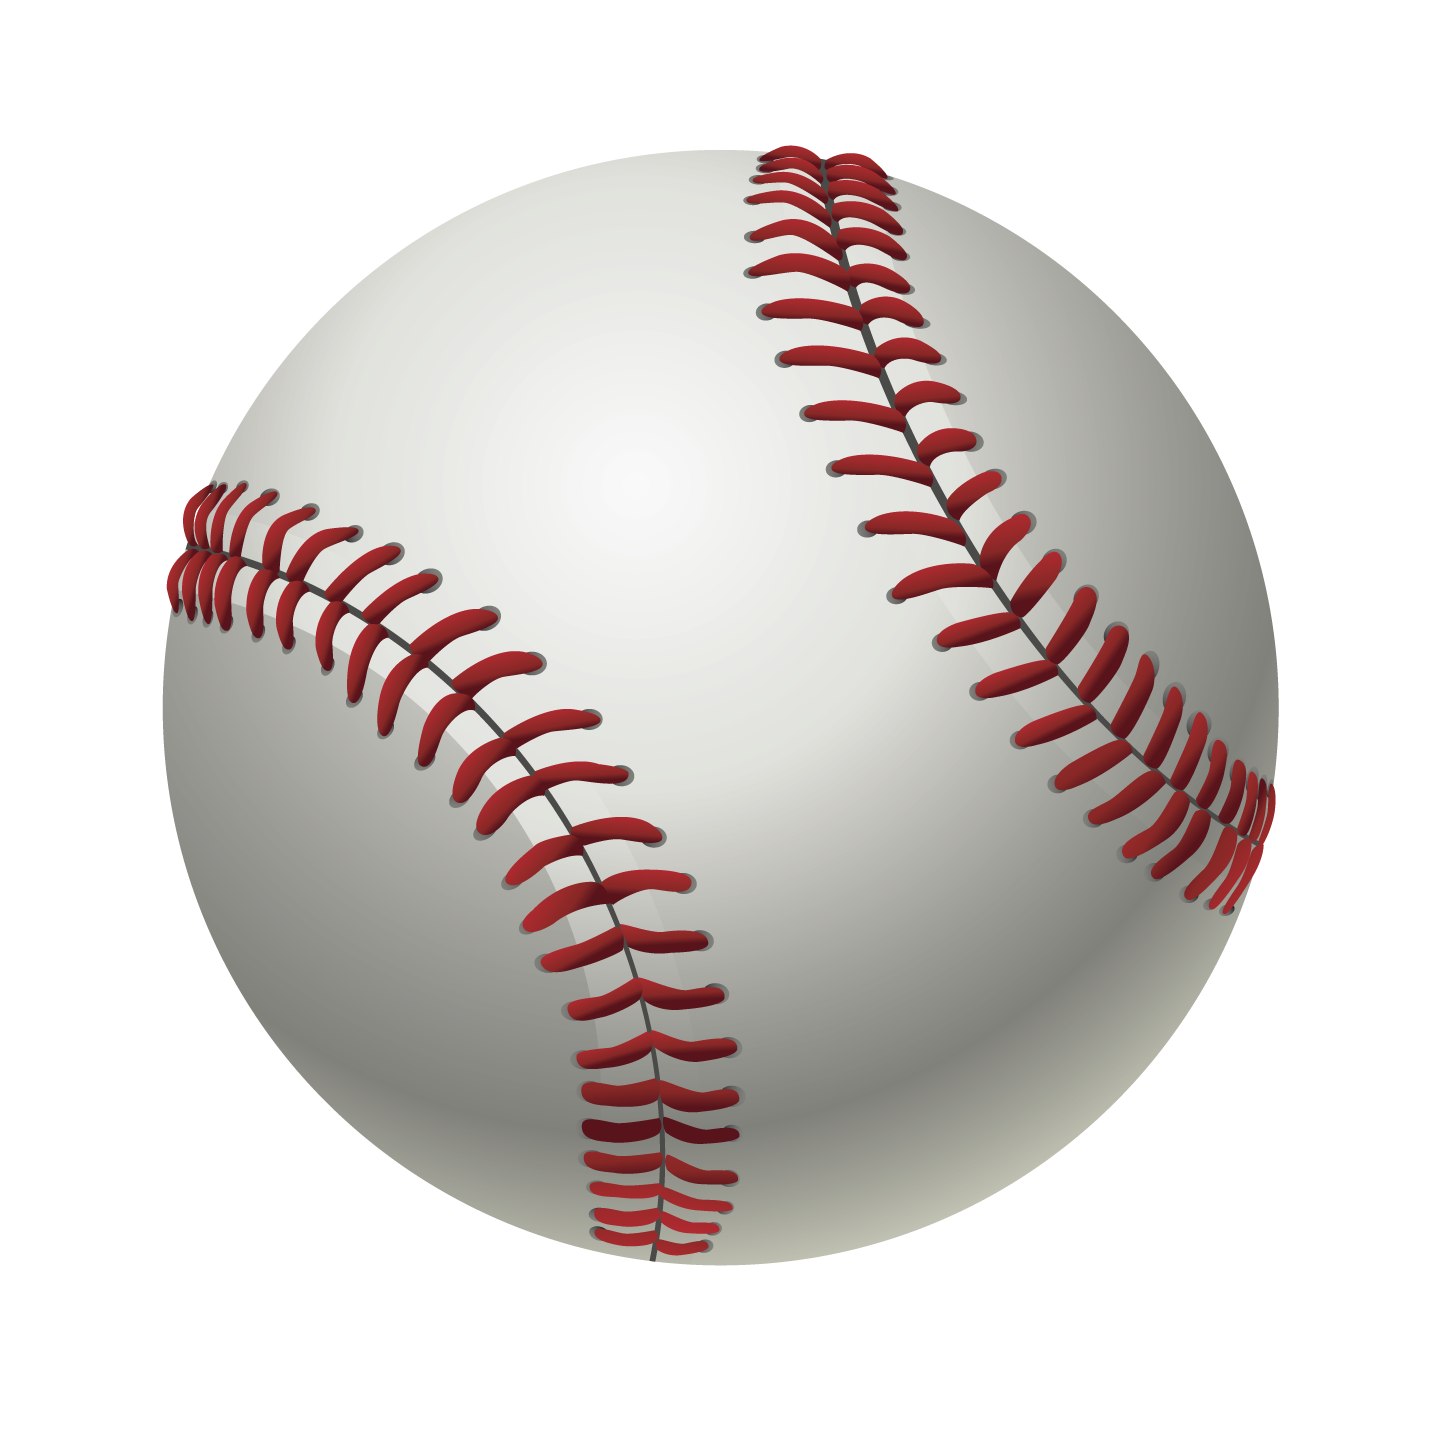 Baseball fire clipart png transparent library Free Download Of Baseball Icon Clipart #35335 - Free Icons and PNG ... png transparent library